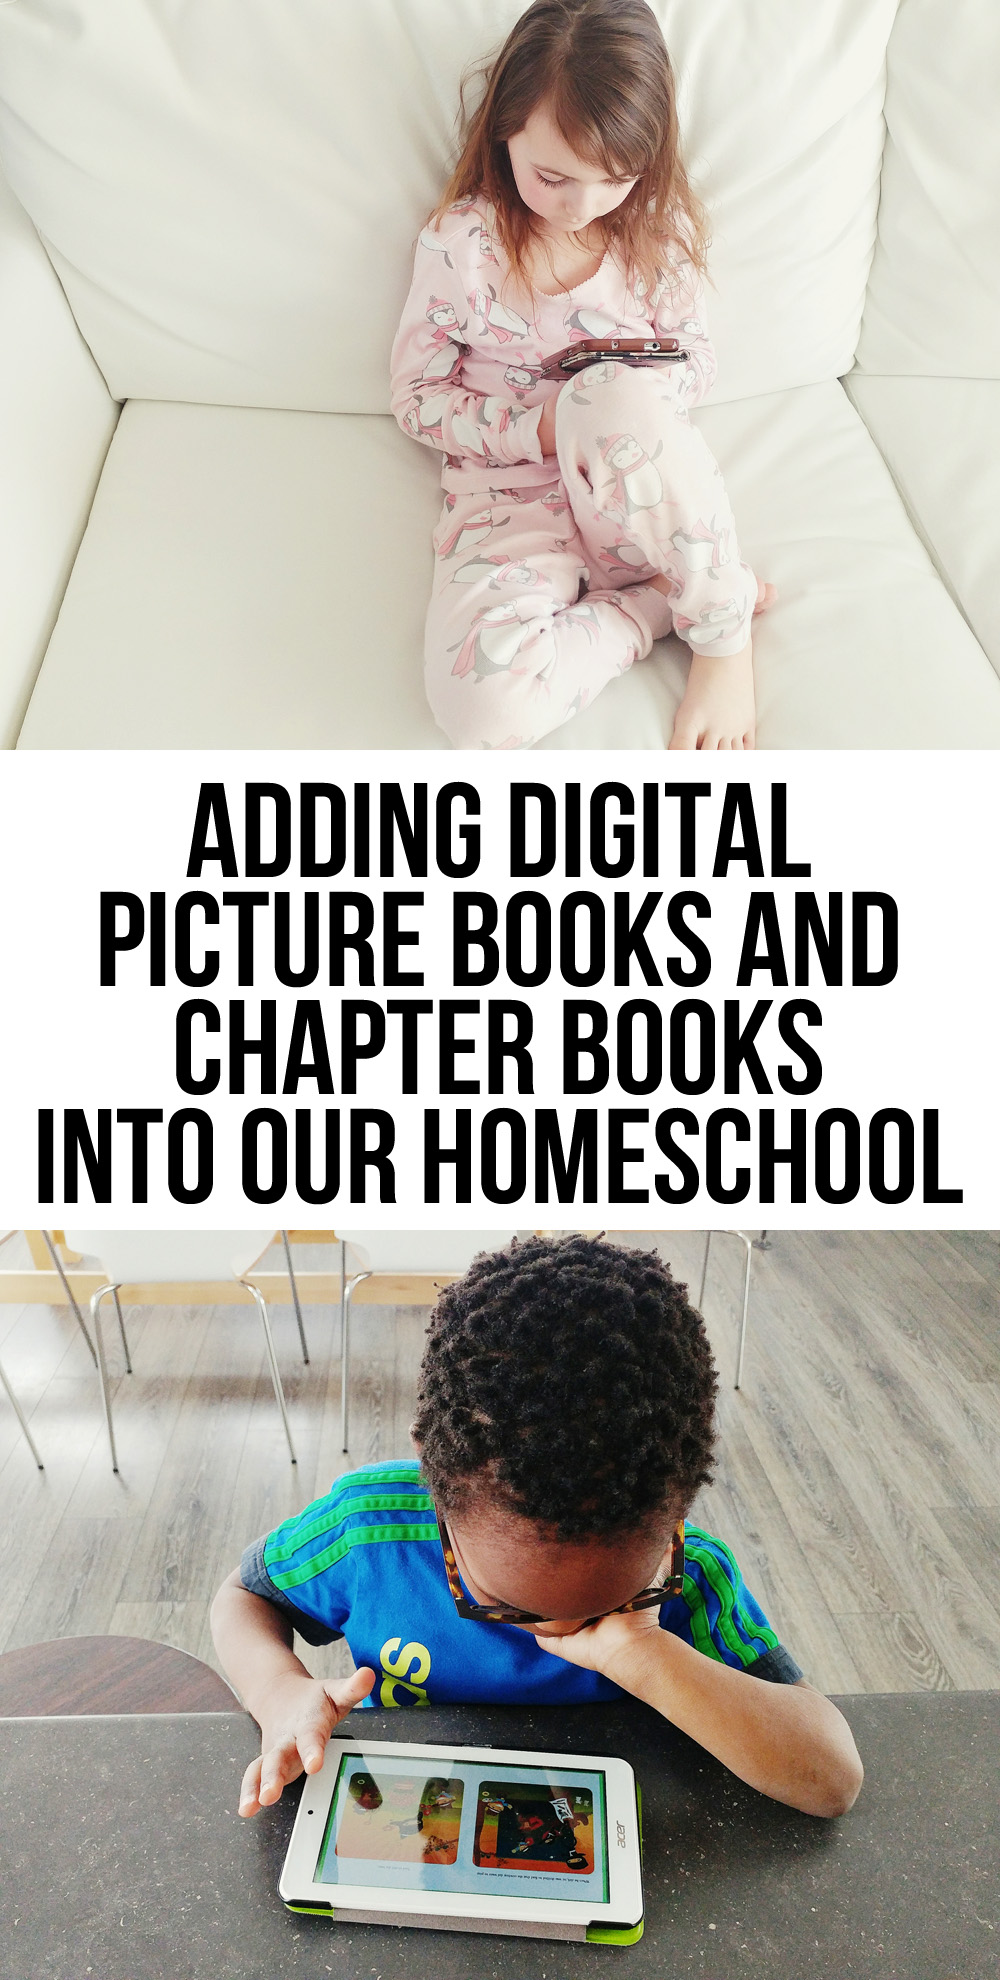 Adding Digital Picture Books and Chapter Books into Our Homeschool - what we love about ebooks in our homeschool.